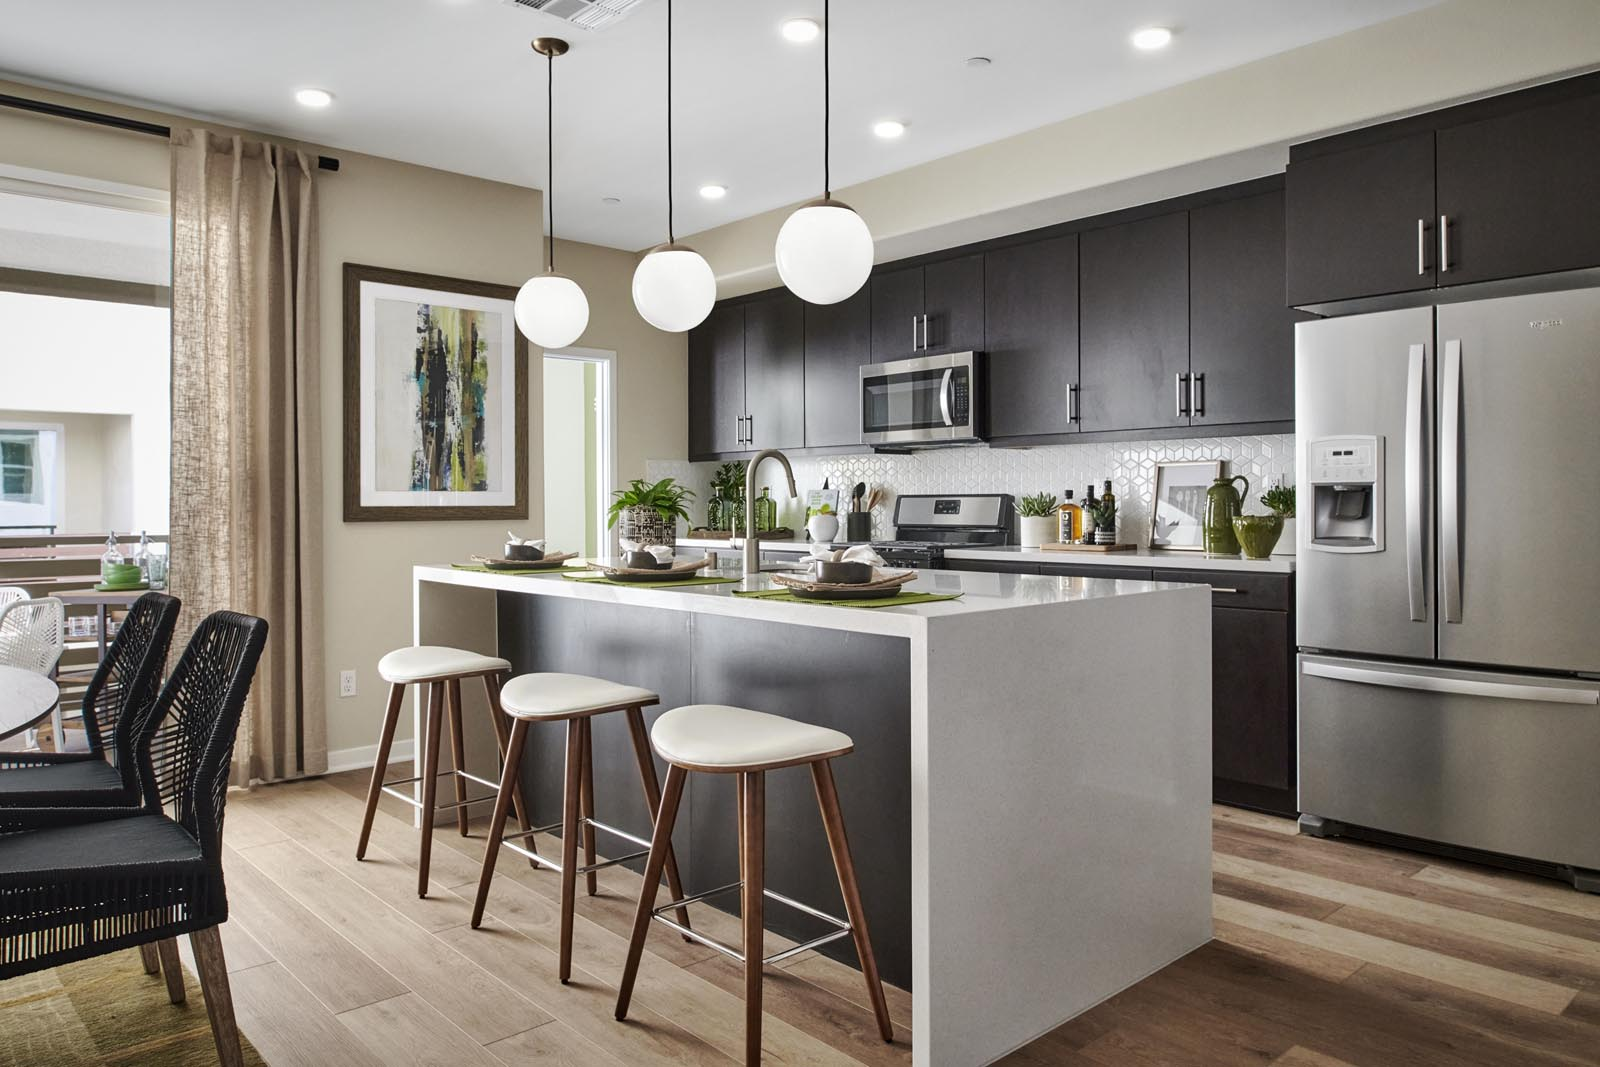 Kitchen   Residence 3   Enliven   New Homes in Rancho Cucamonga, CA   Van Daele Homes